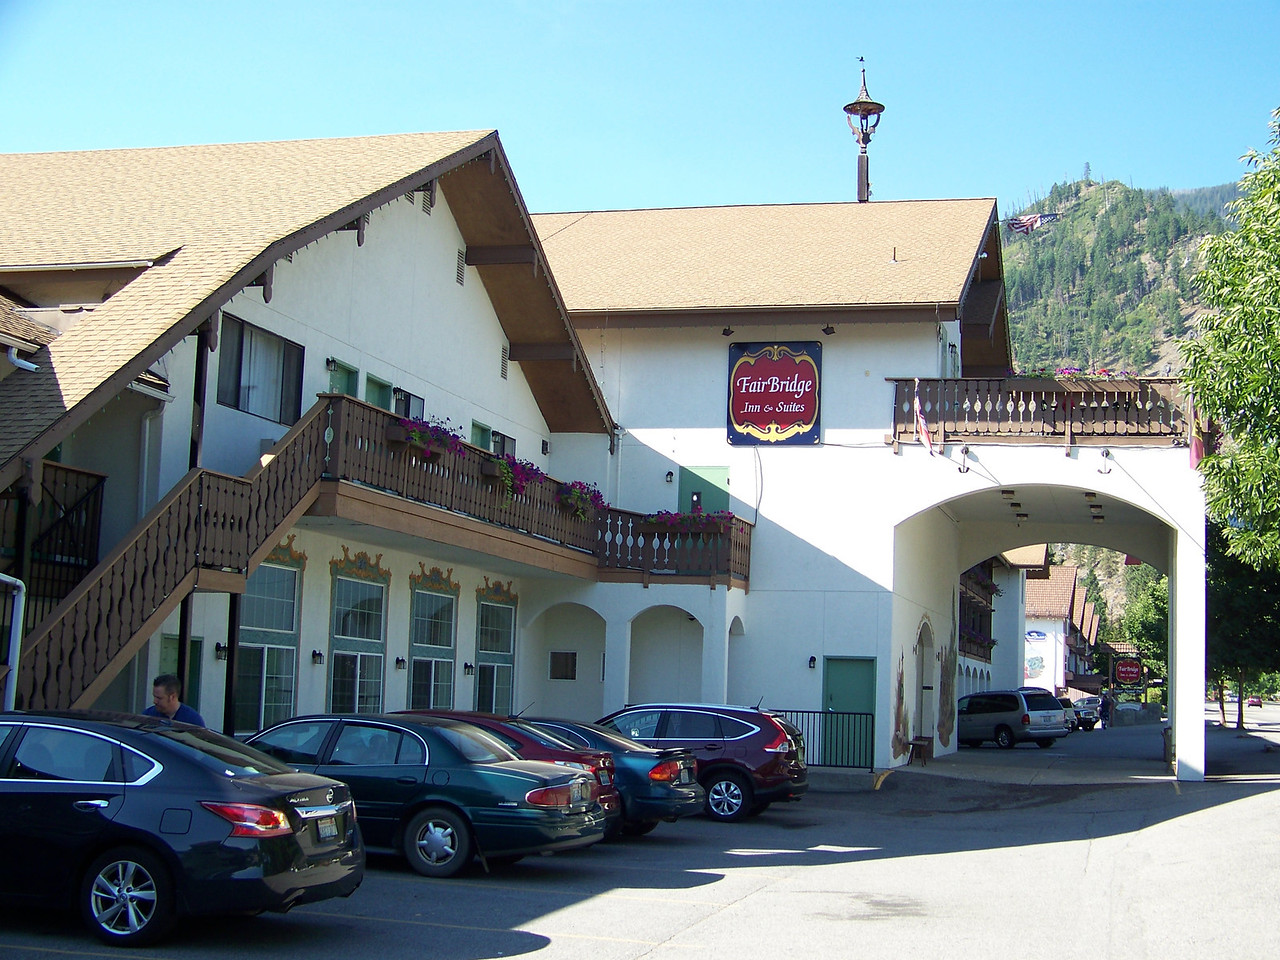 We spent the night here at the Fair Bridge Inn and Suites.<br /> [Leavenworth, WA]